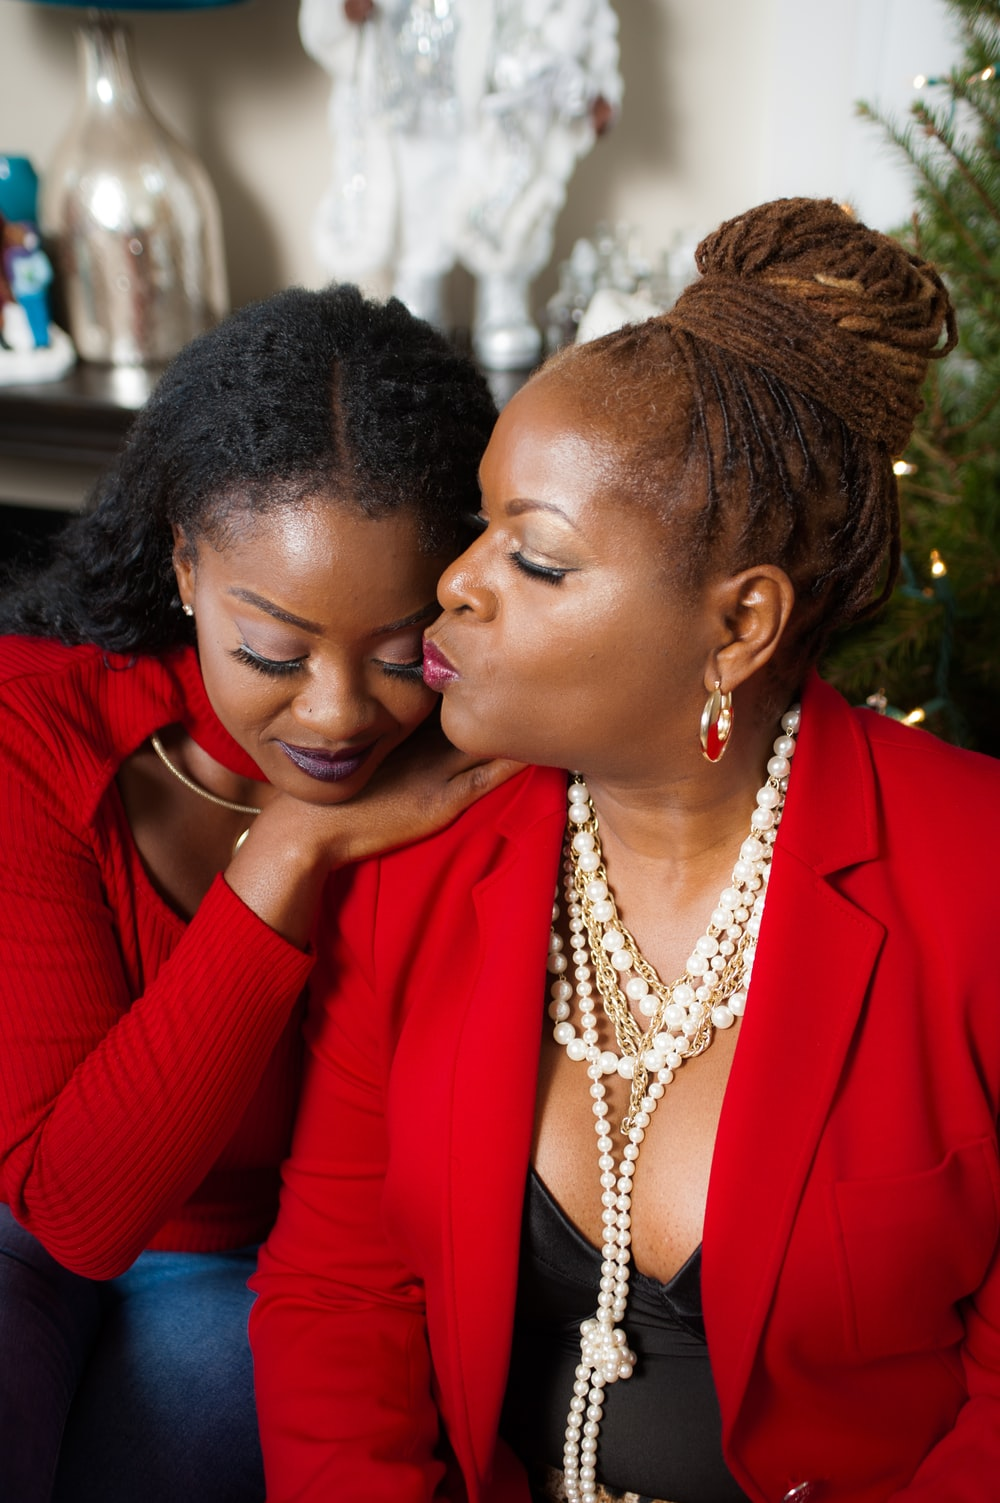 woman in red blazer kissing woman in gold necklace